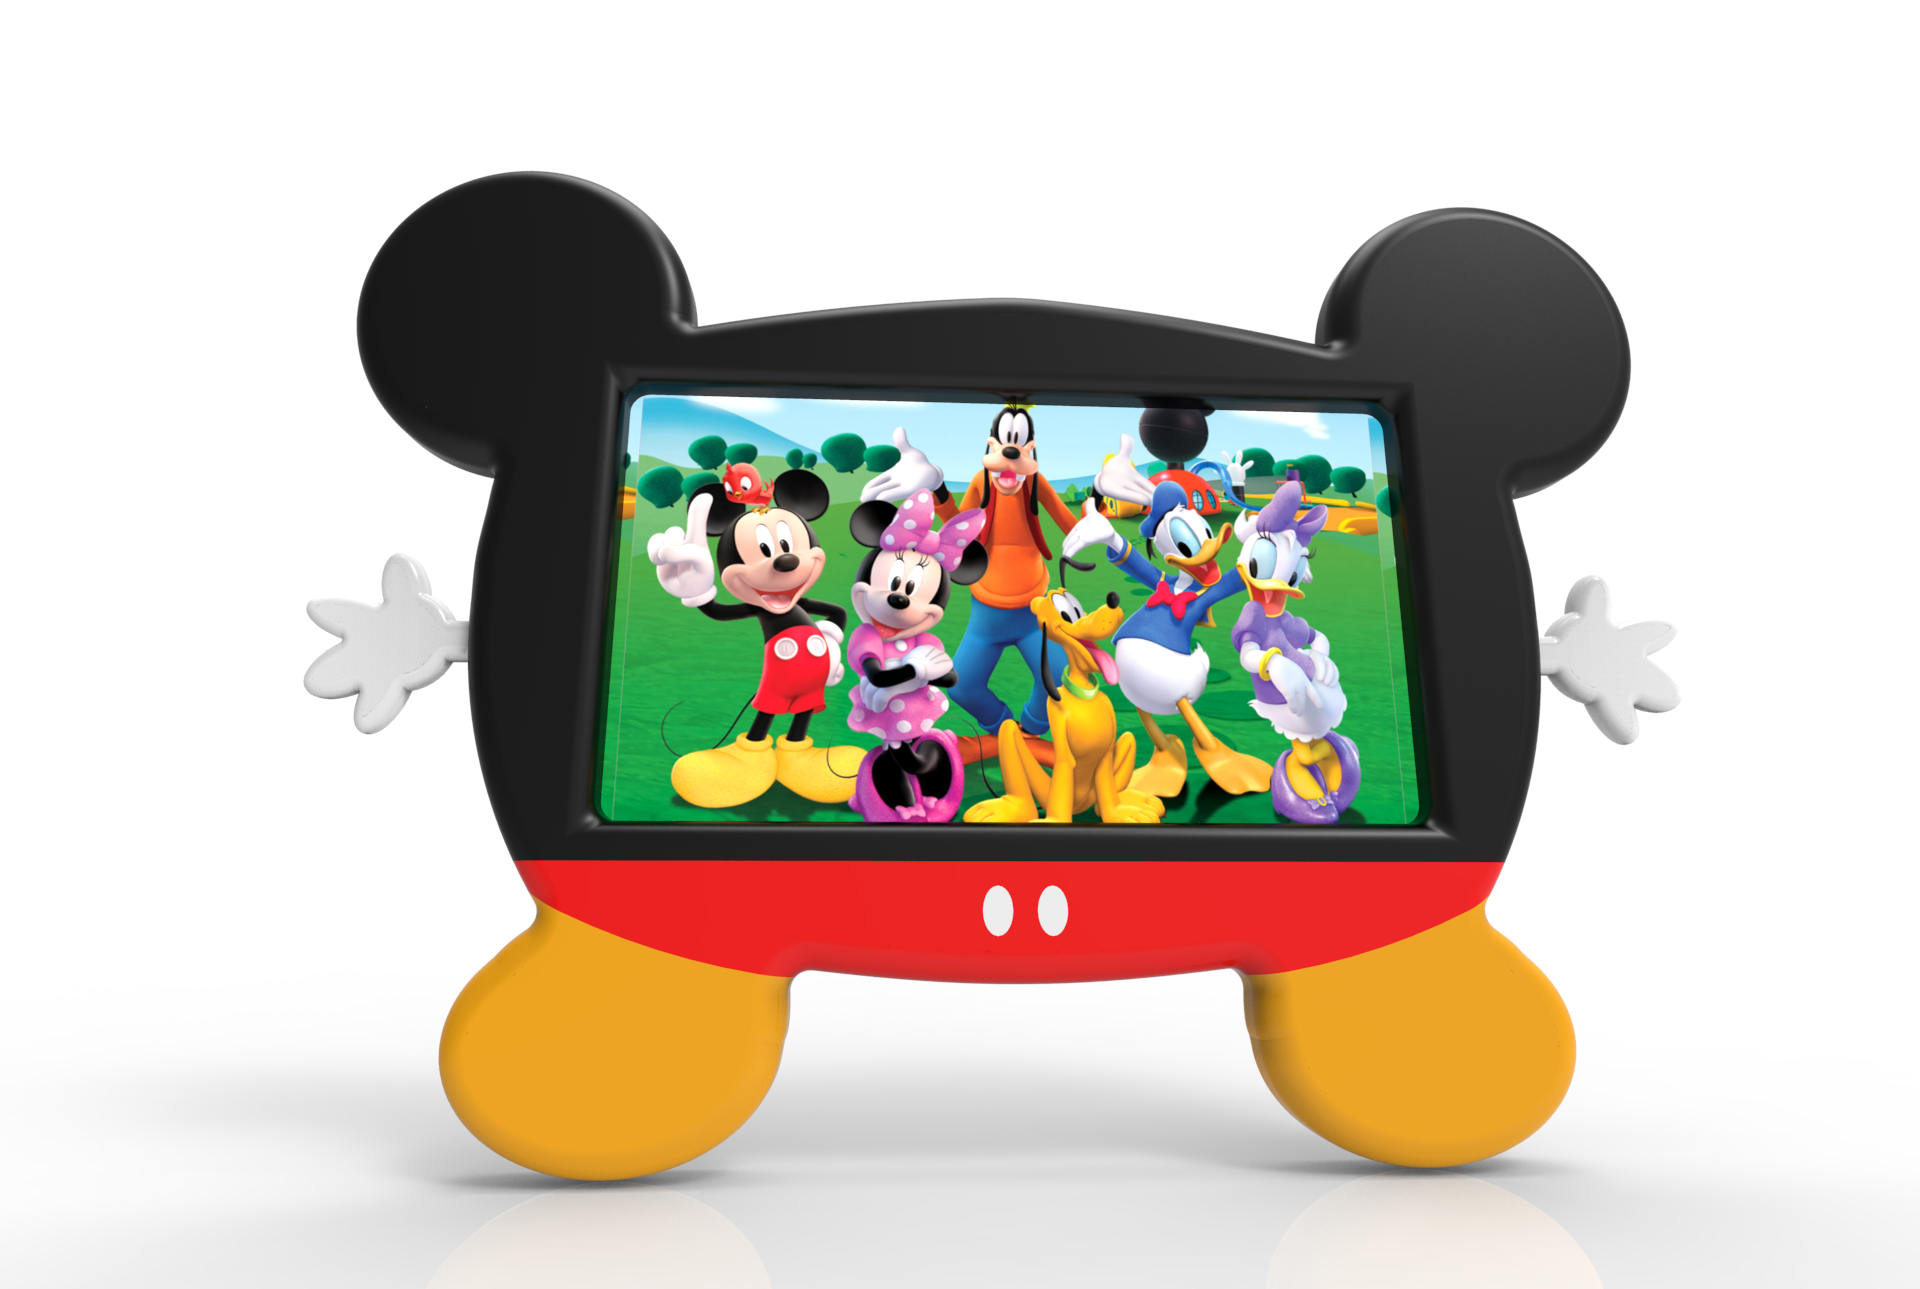 Cardboard Helicopter Product Design Cleveland Ohio Product Development Industrial Design - Disney Mickey Mouse Clubhouse Digital Smart iPad Tablet Electronics Case.png